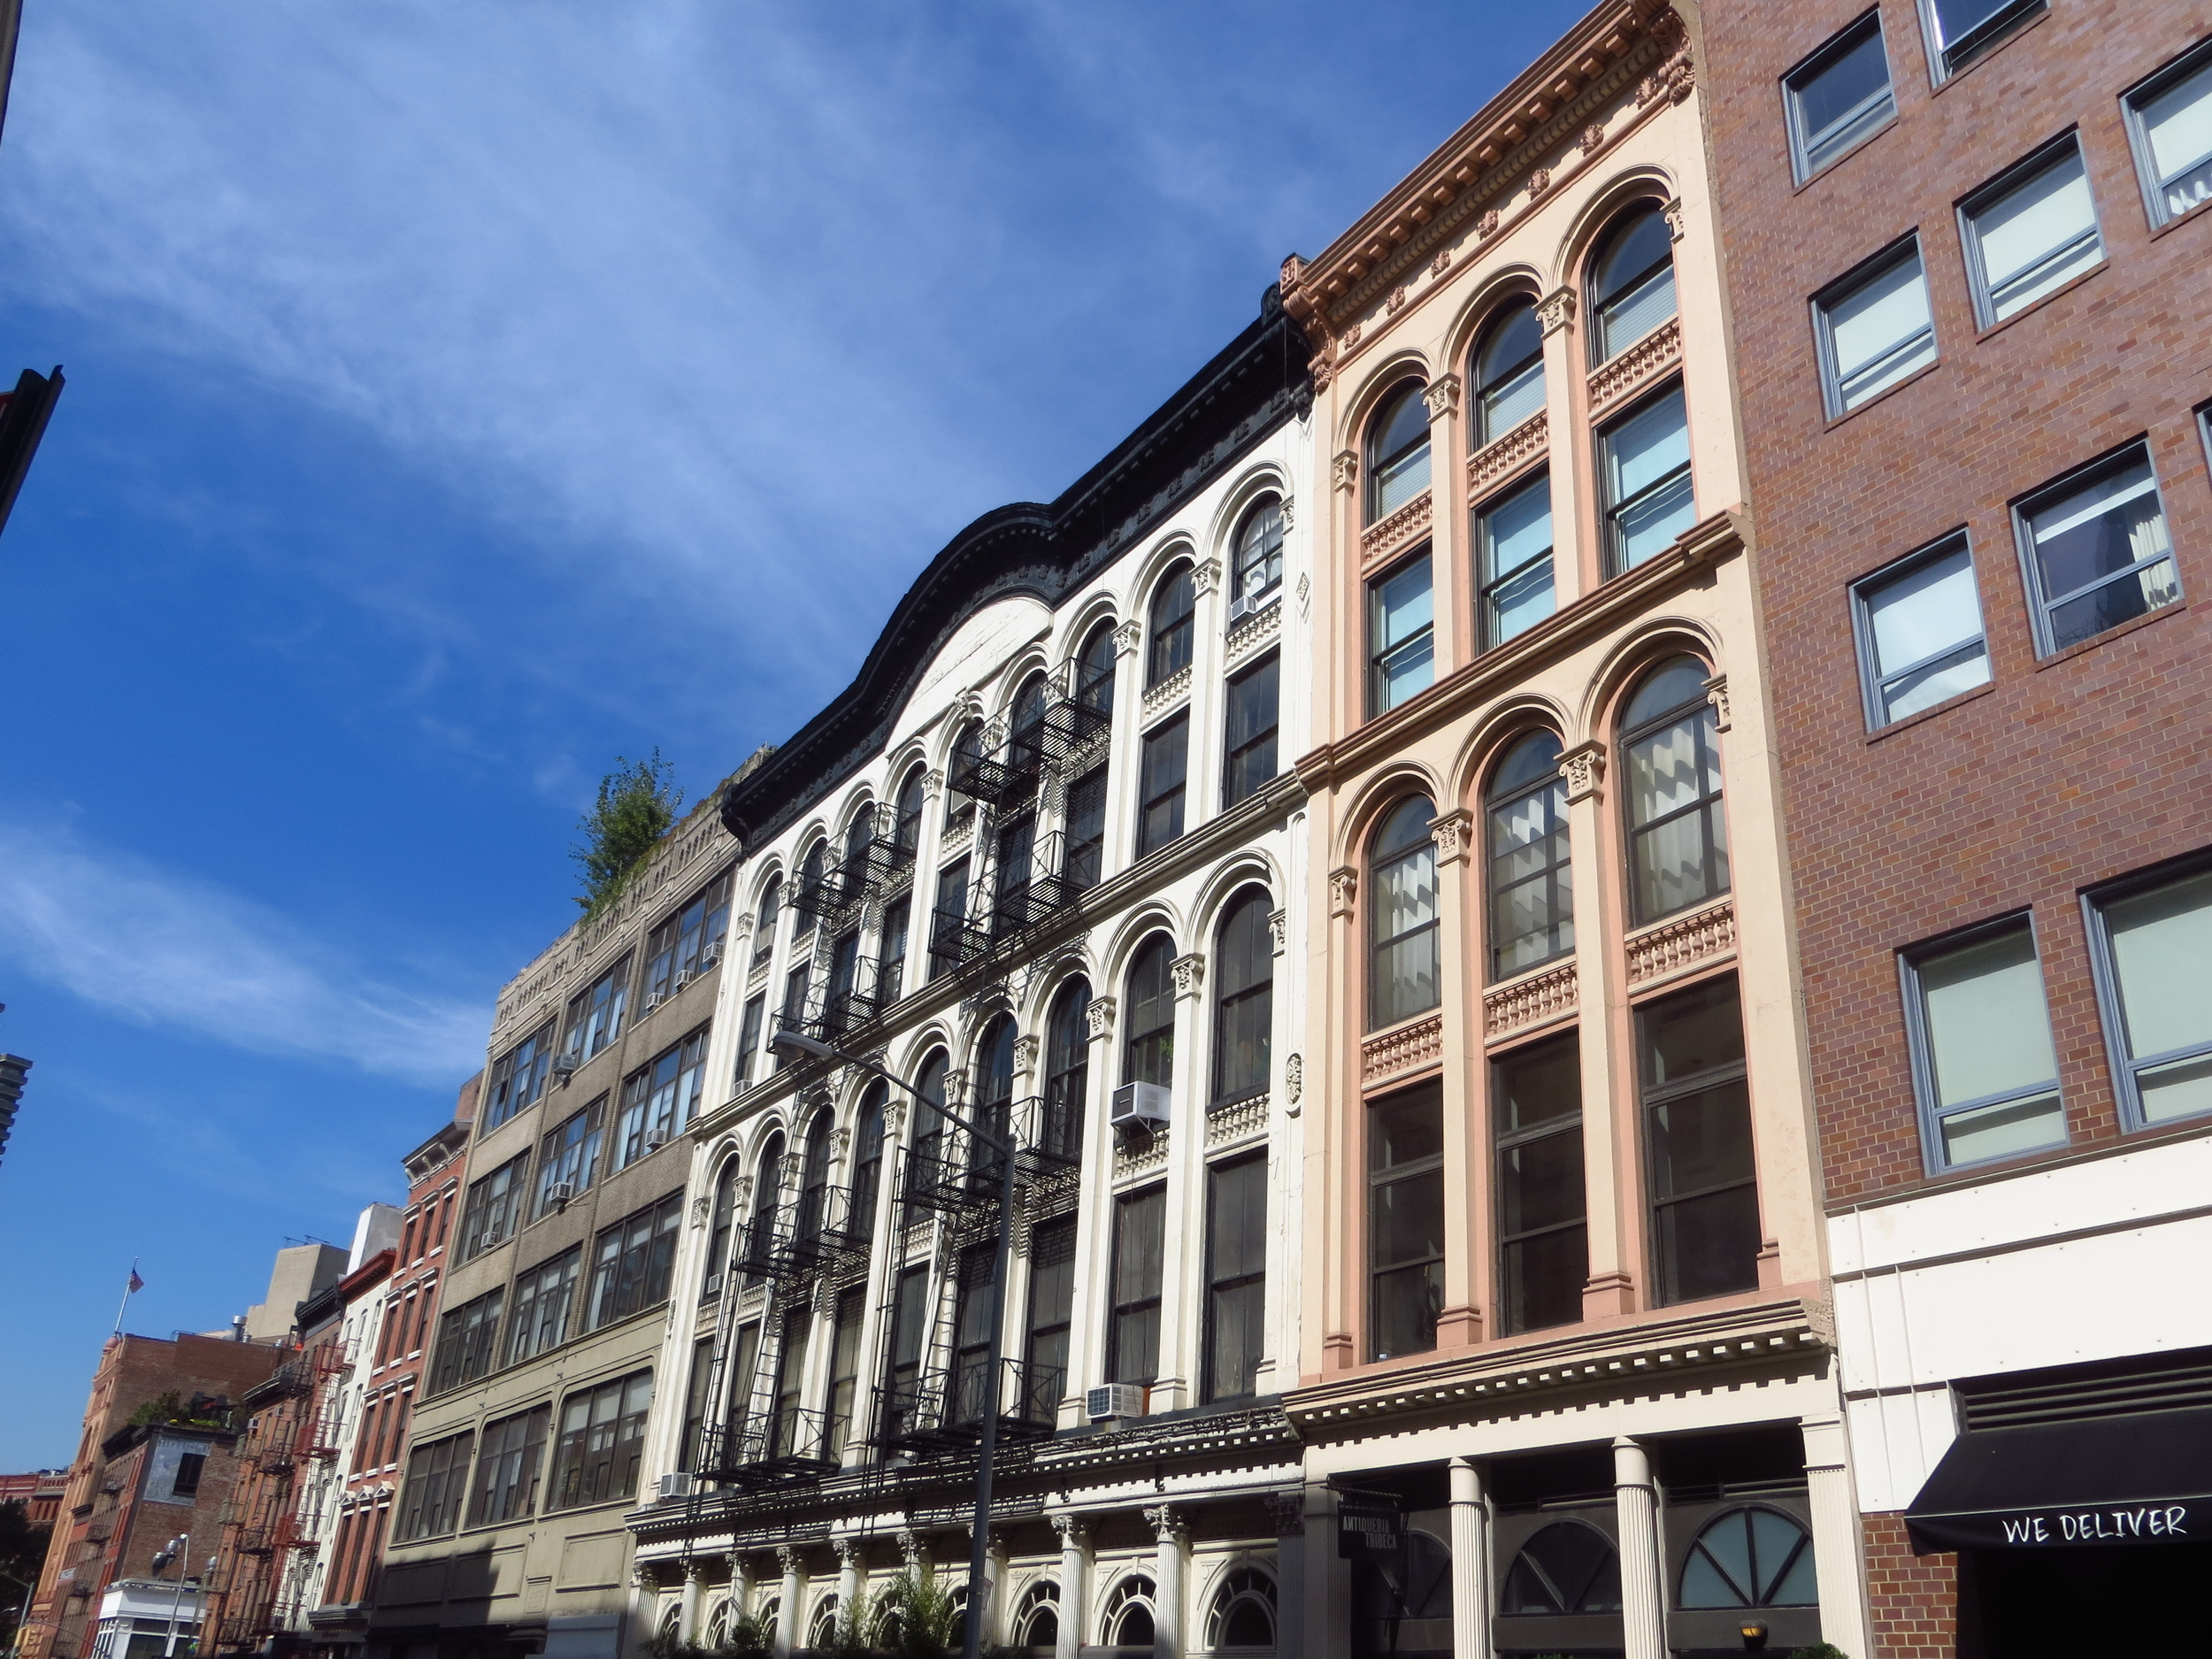 More cool buildings on Duane St.